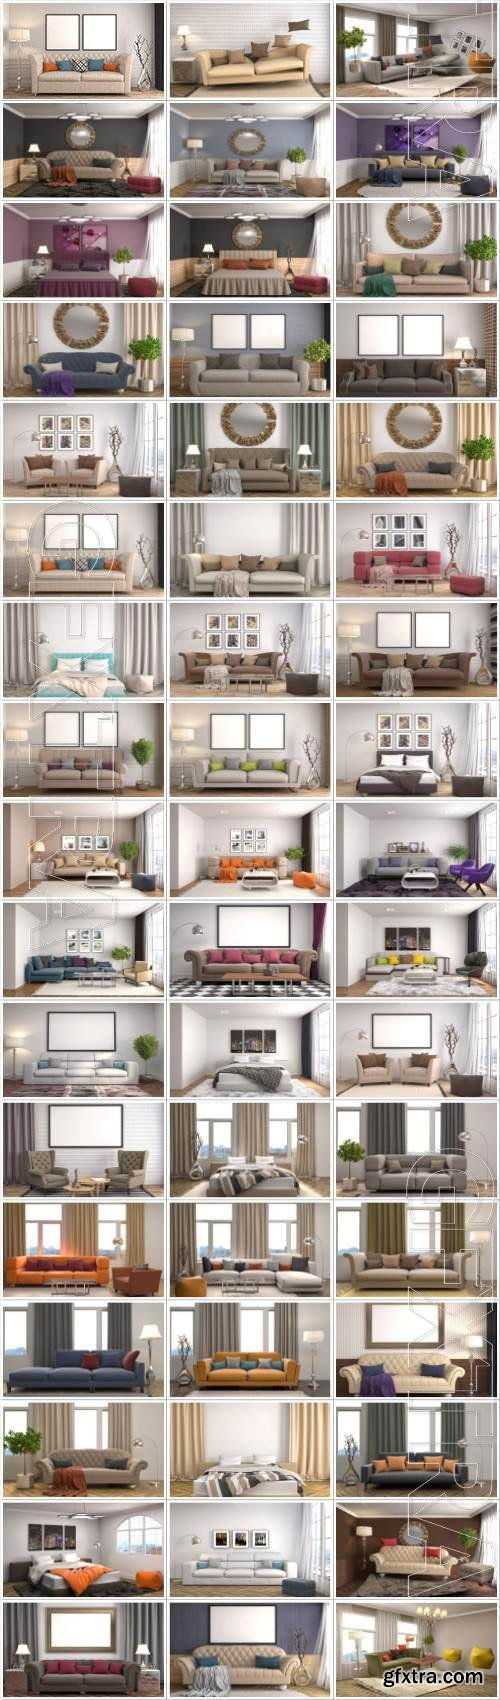 Interior large selection of stock photos